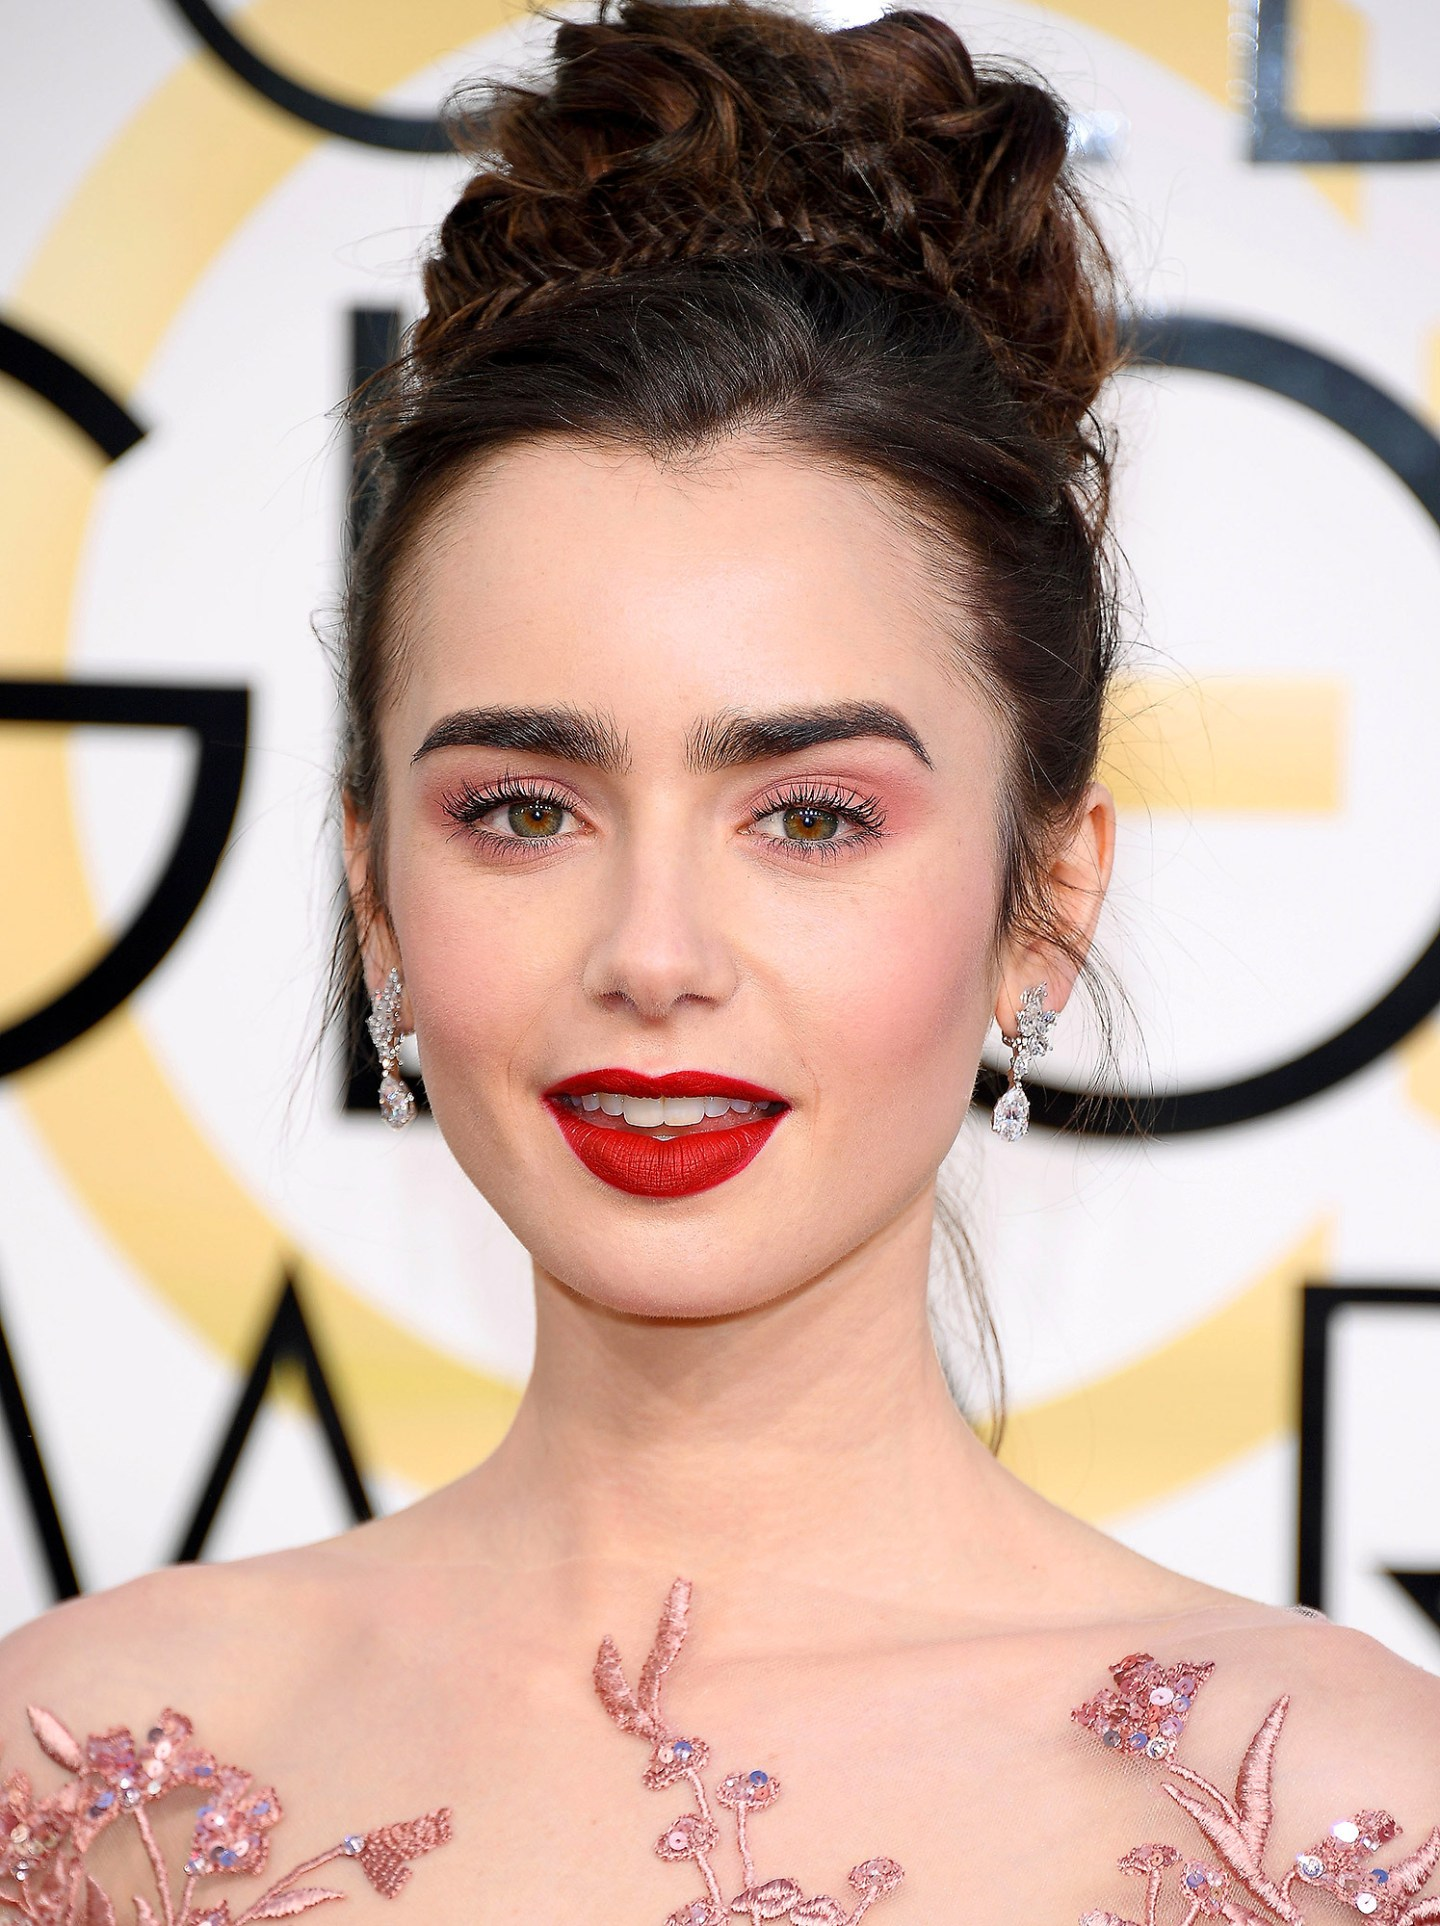 Lily Collins Golden Globes 2017 Makeup Tutorial